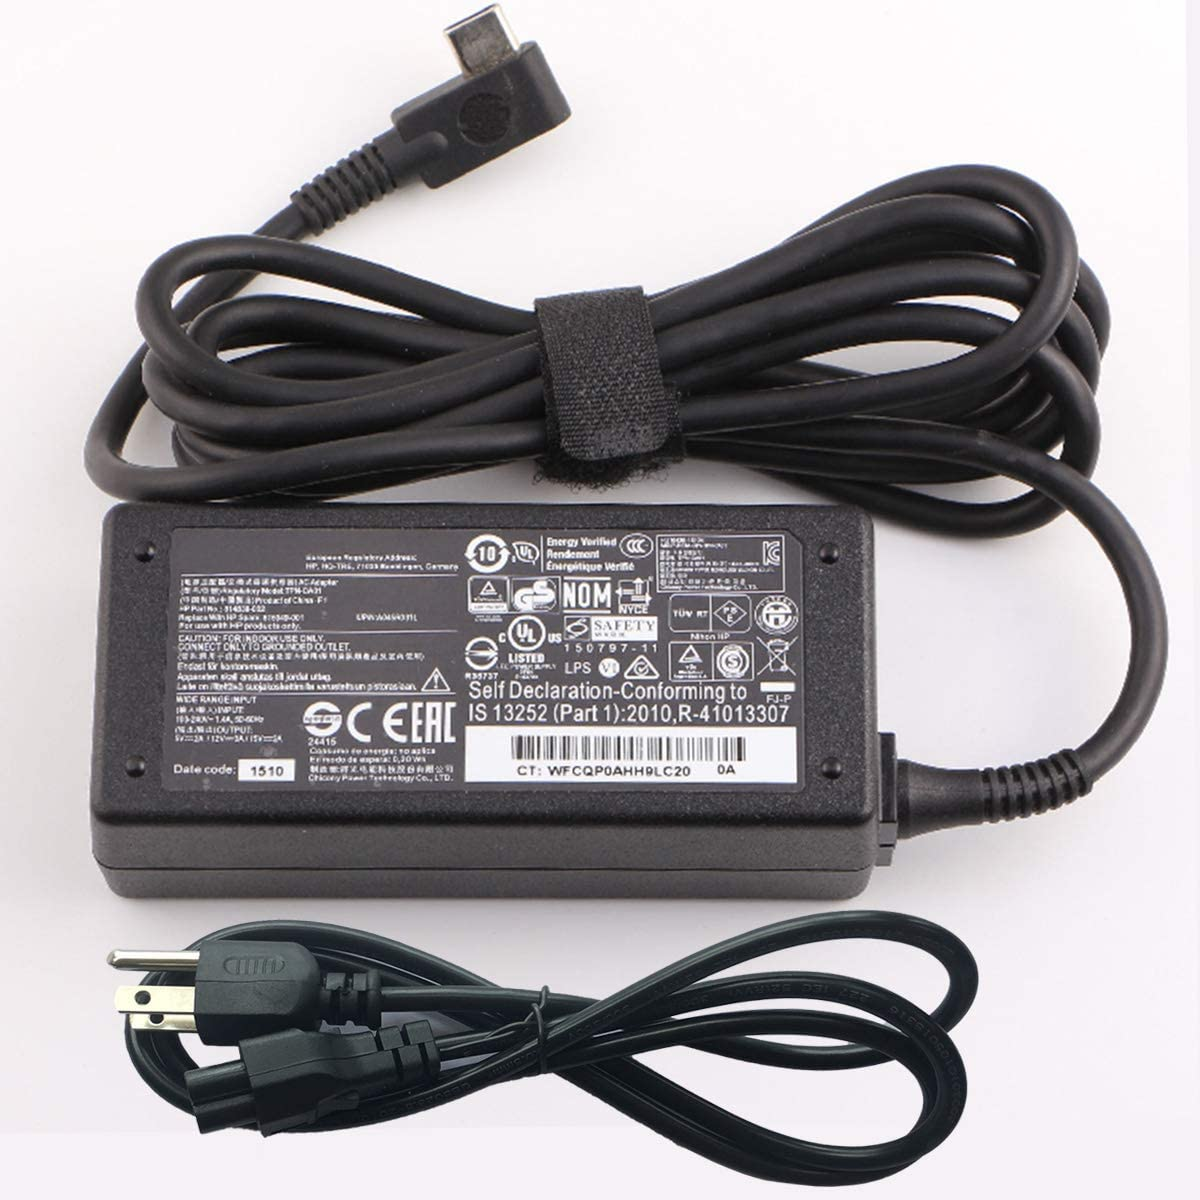 New 45W Type C Charger 15V 3A USB C Laptop Ac Adapter V5Y26AA For HP Spectre x360 13,Elite x2 1012 Power TPN-CA01 TPN-LA07 863469-001 844205-850 10-P000 Pavilion 12-B Chromebook 14-CA x2 12 x360 11